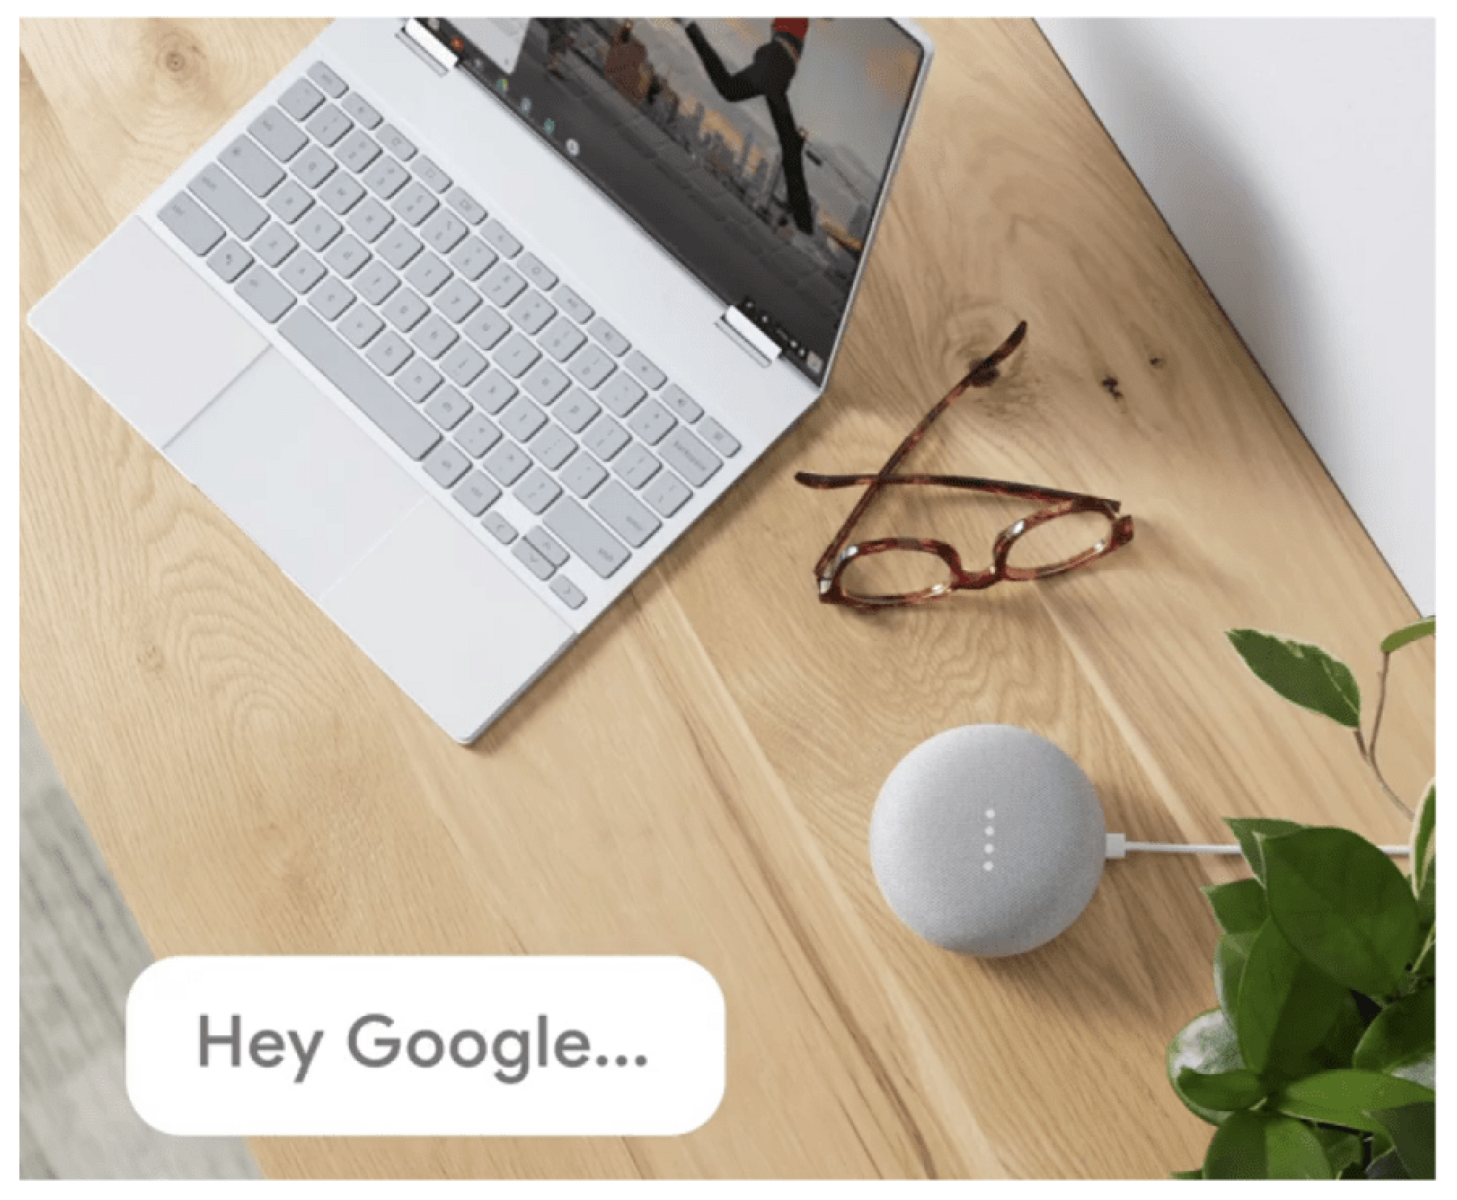 Next-gen Pixelbook 2 Google Chromebook leaks out in pictures